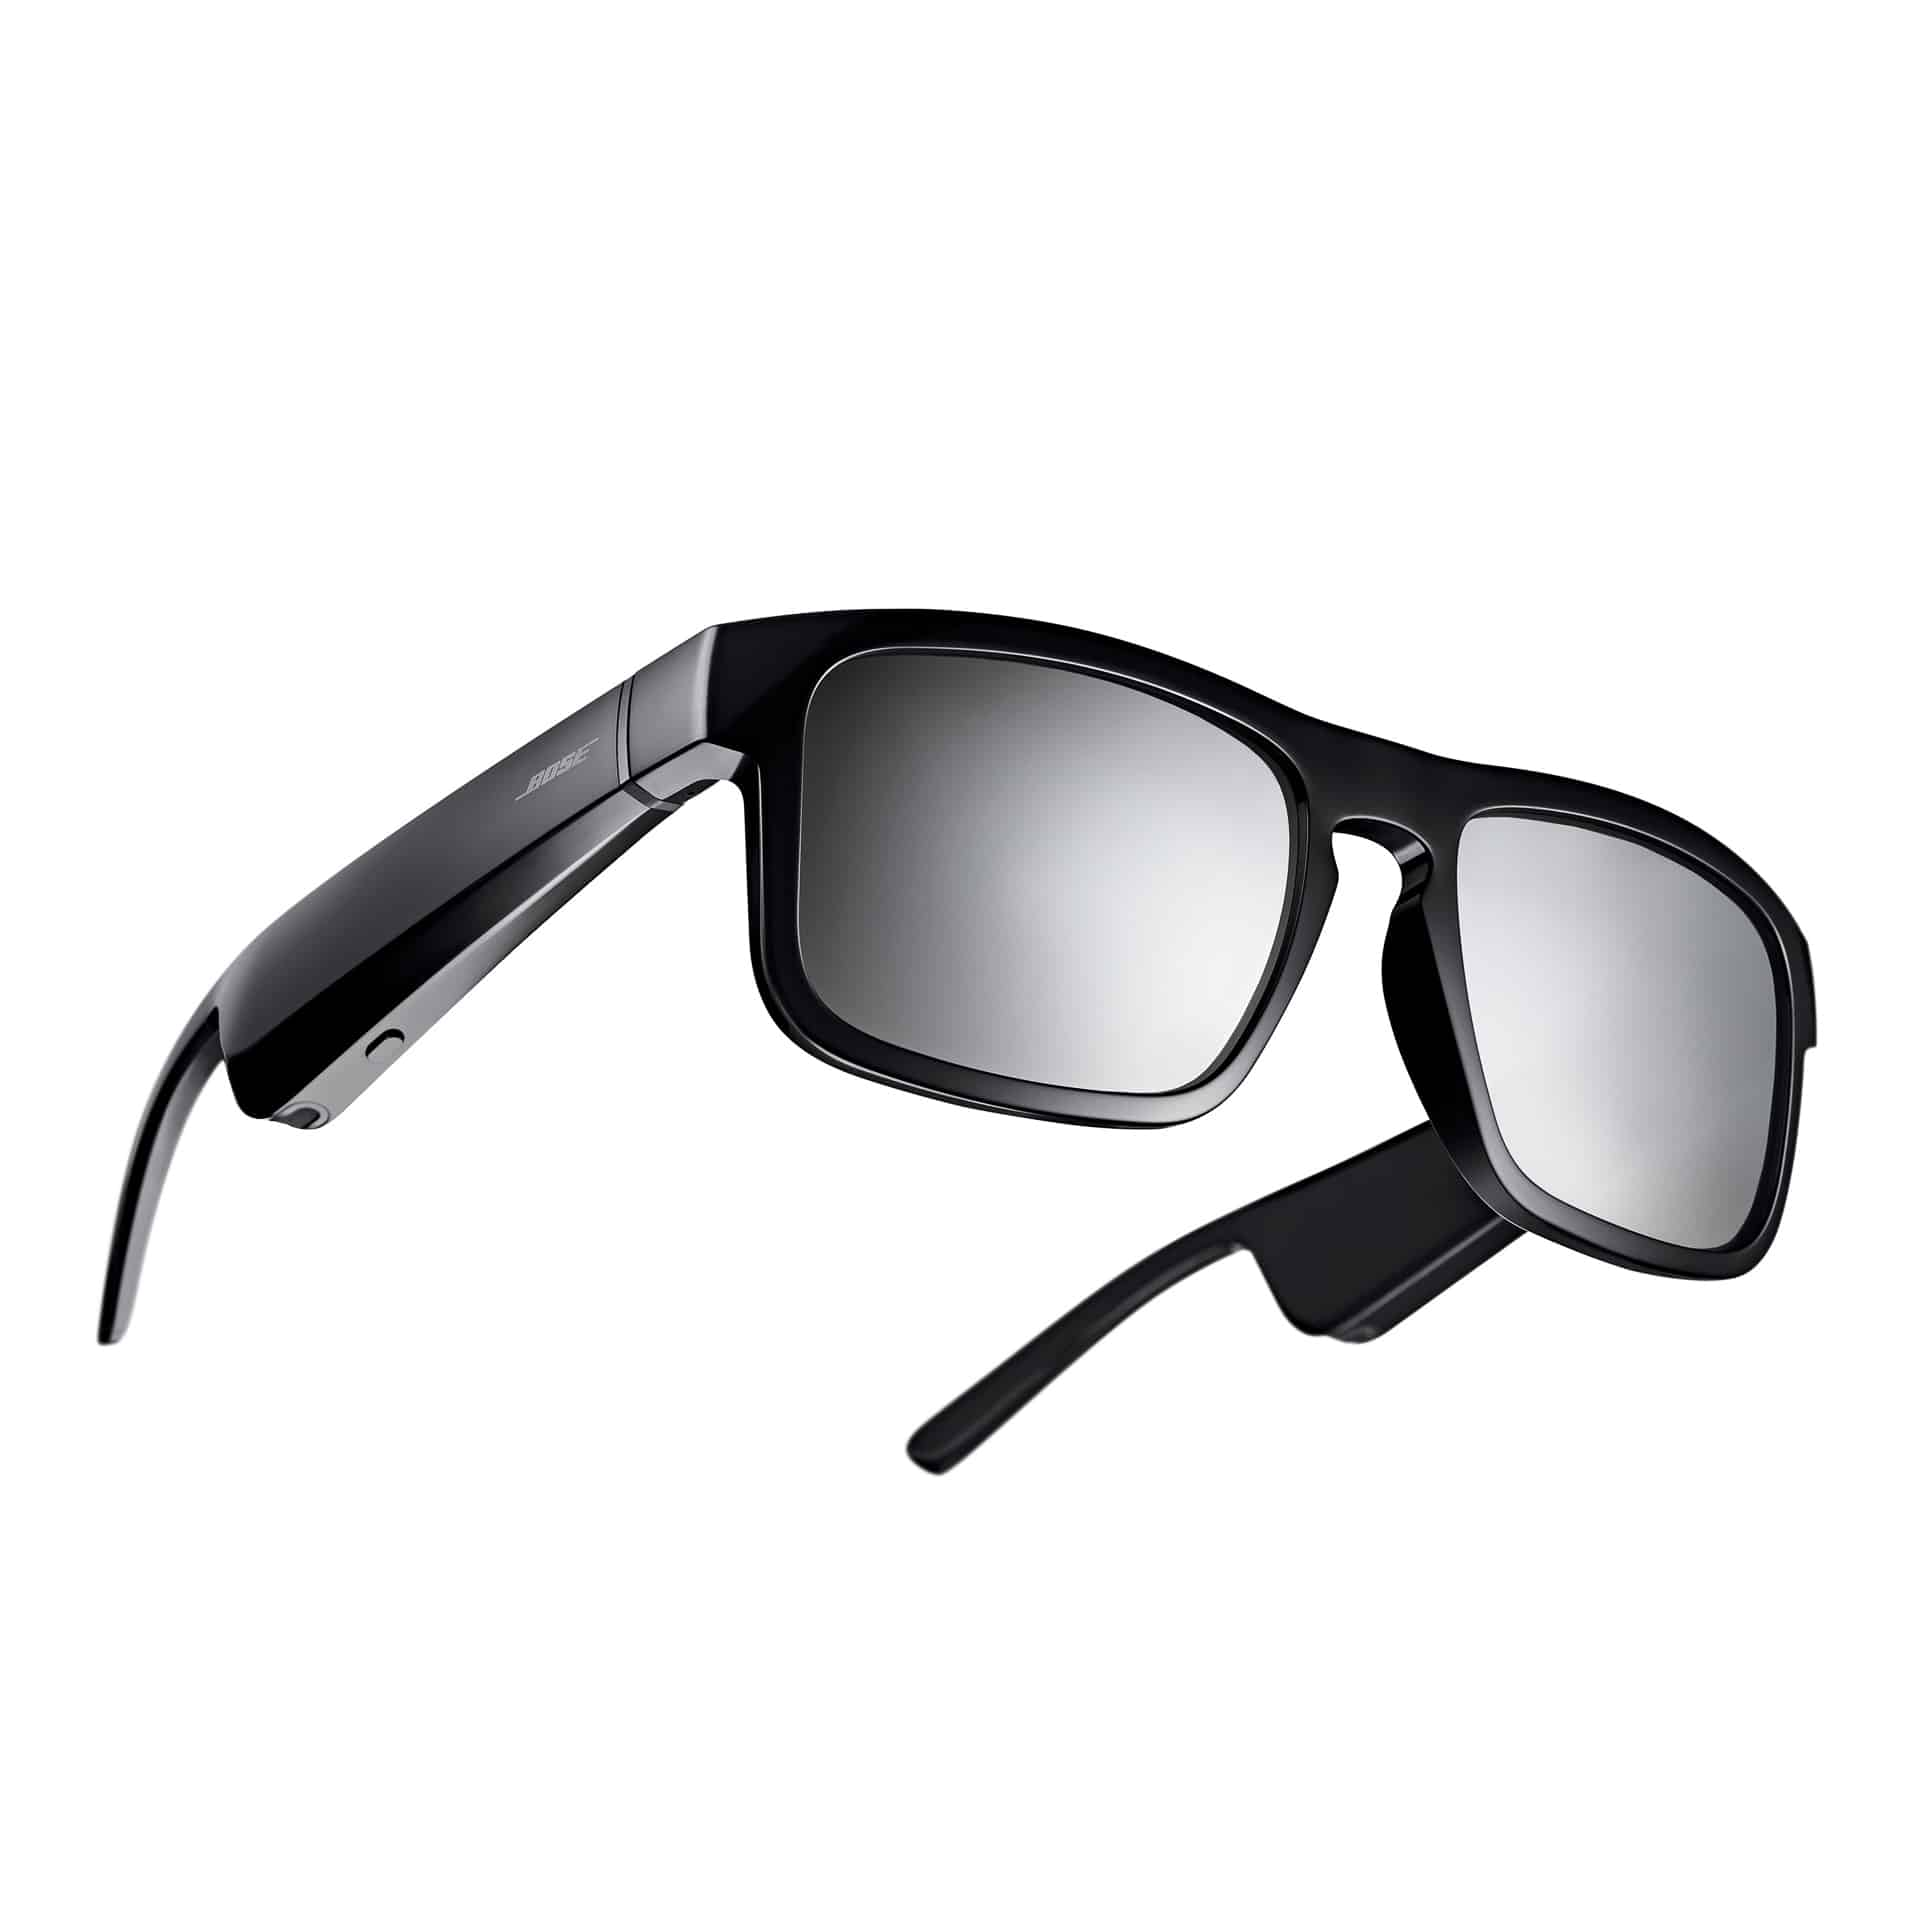 Bose Frames Tenor with Mirrored Silver Lenses 1